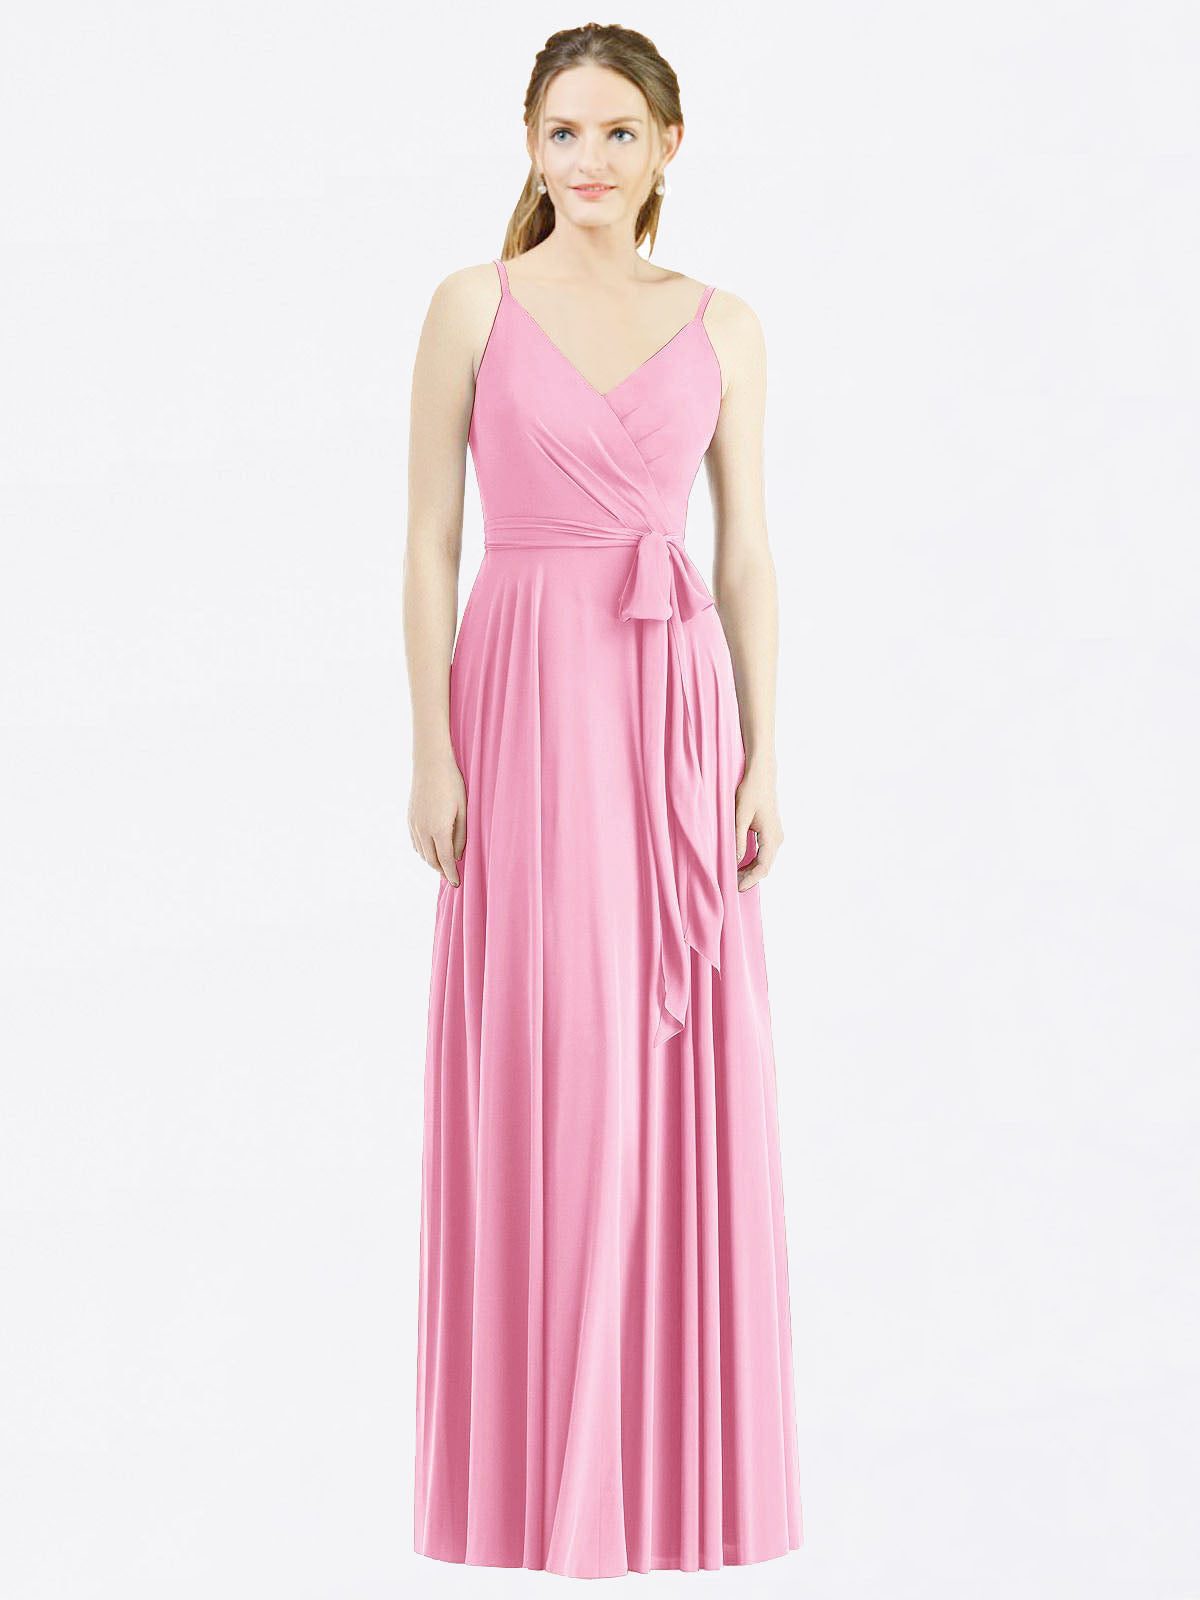 Long A-Line Spaghetti Straps, V-Neck Sleeveless Hot Pink Chiffon Bridesmaid Dress Madilyn